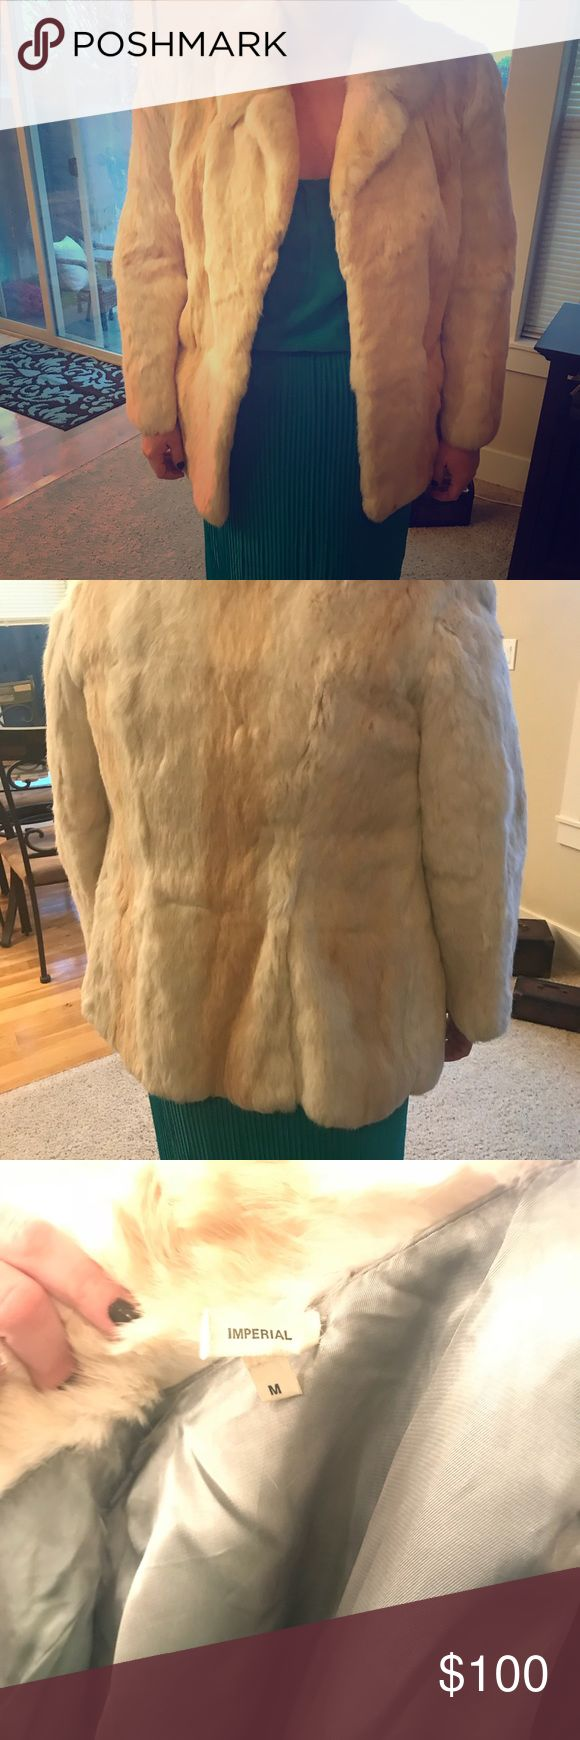 Real Rabbit Fur Coat Real Rabbit Fur Coat. Size Medium. In beautiful condition. Silk lining. Jackets & Coats